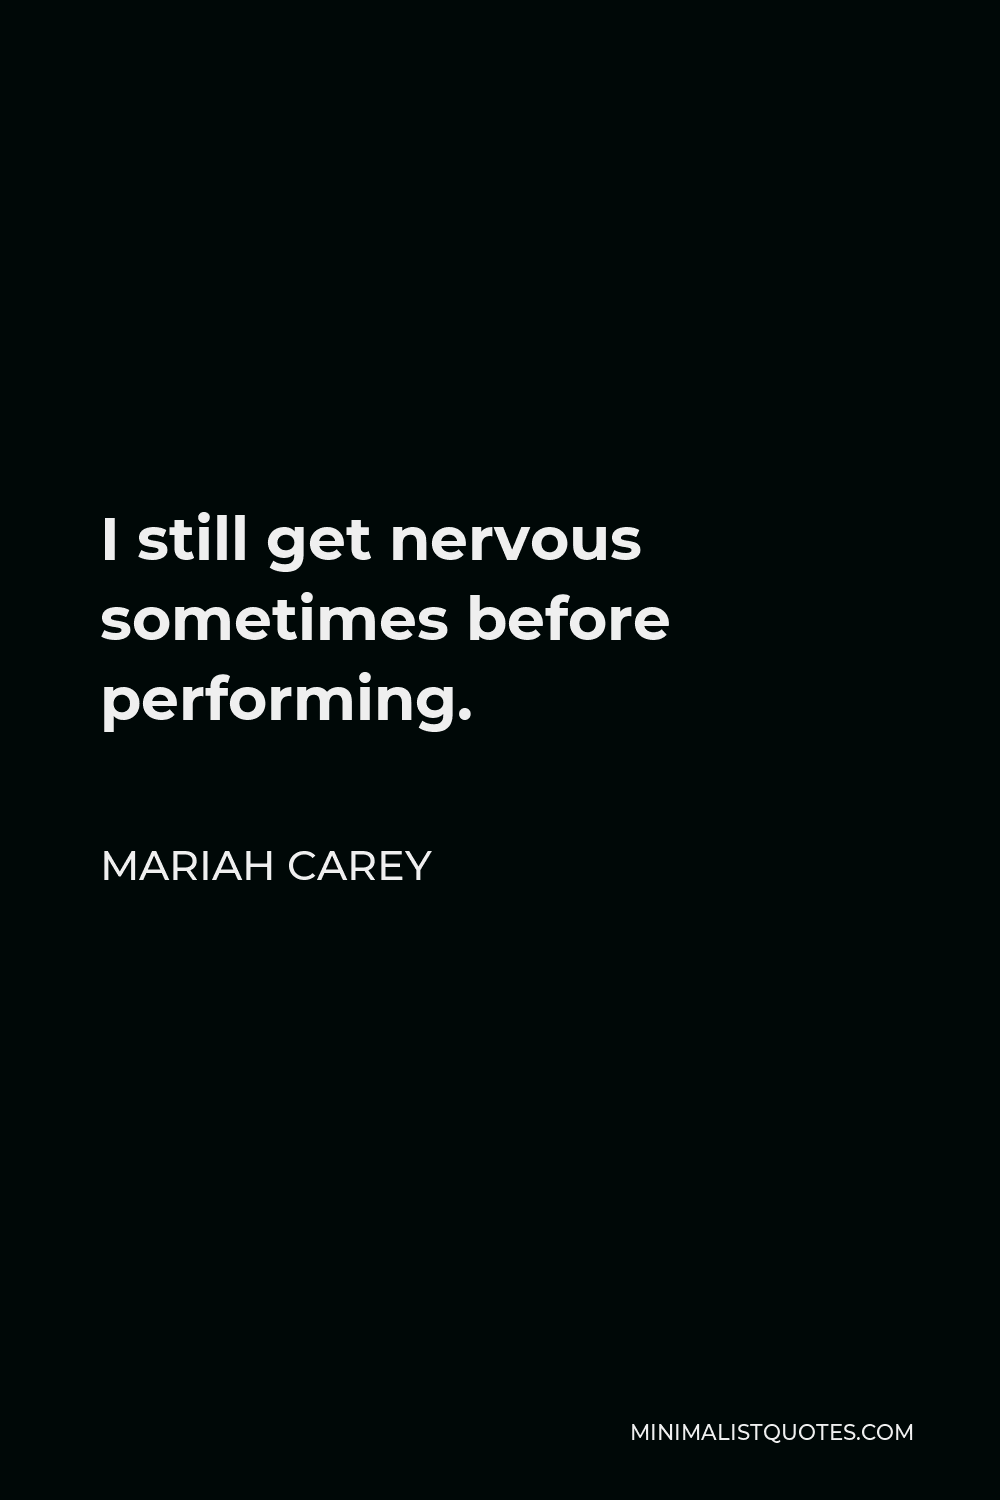 Mariah Carey Quote - I still get nervous sometimes before performing.